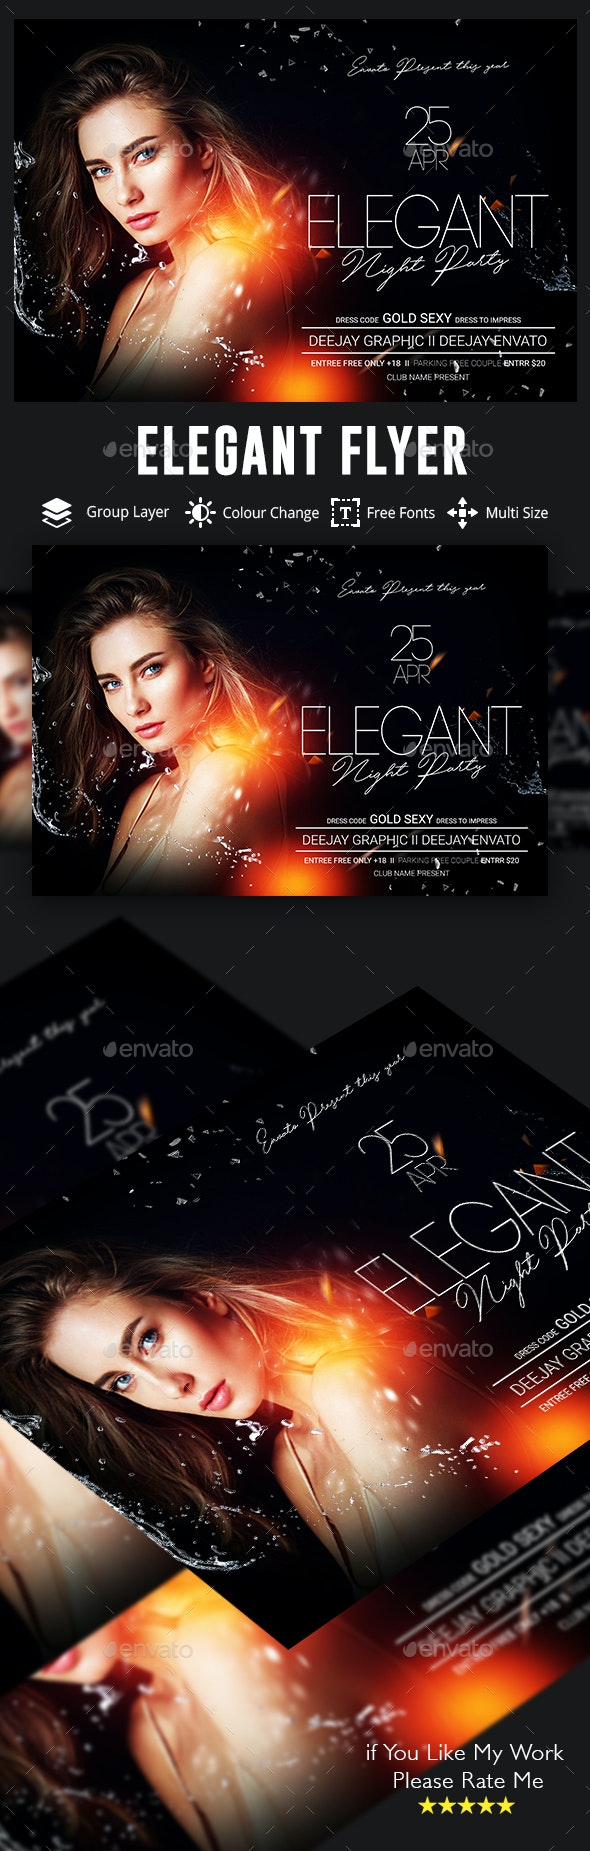 Elegant Ladies Night Party Flyer - Events Flyers